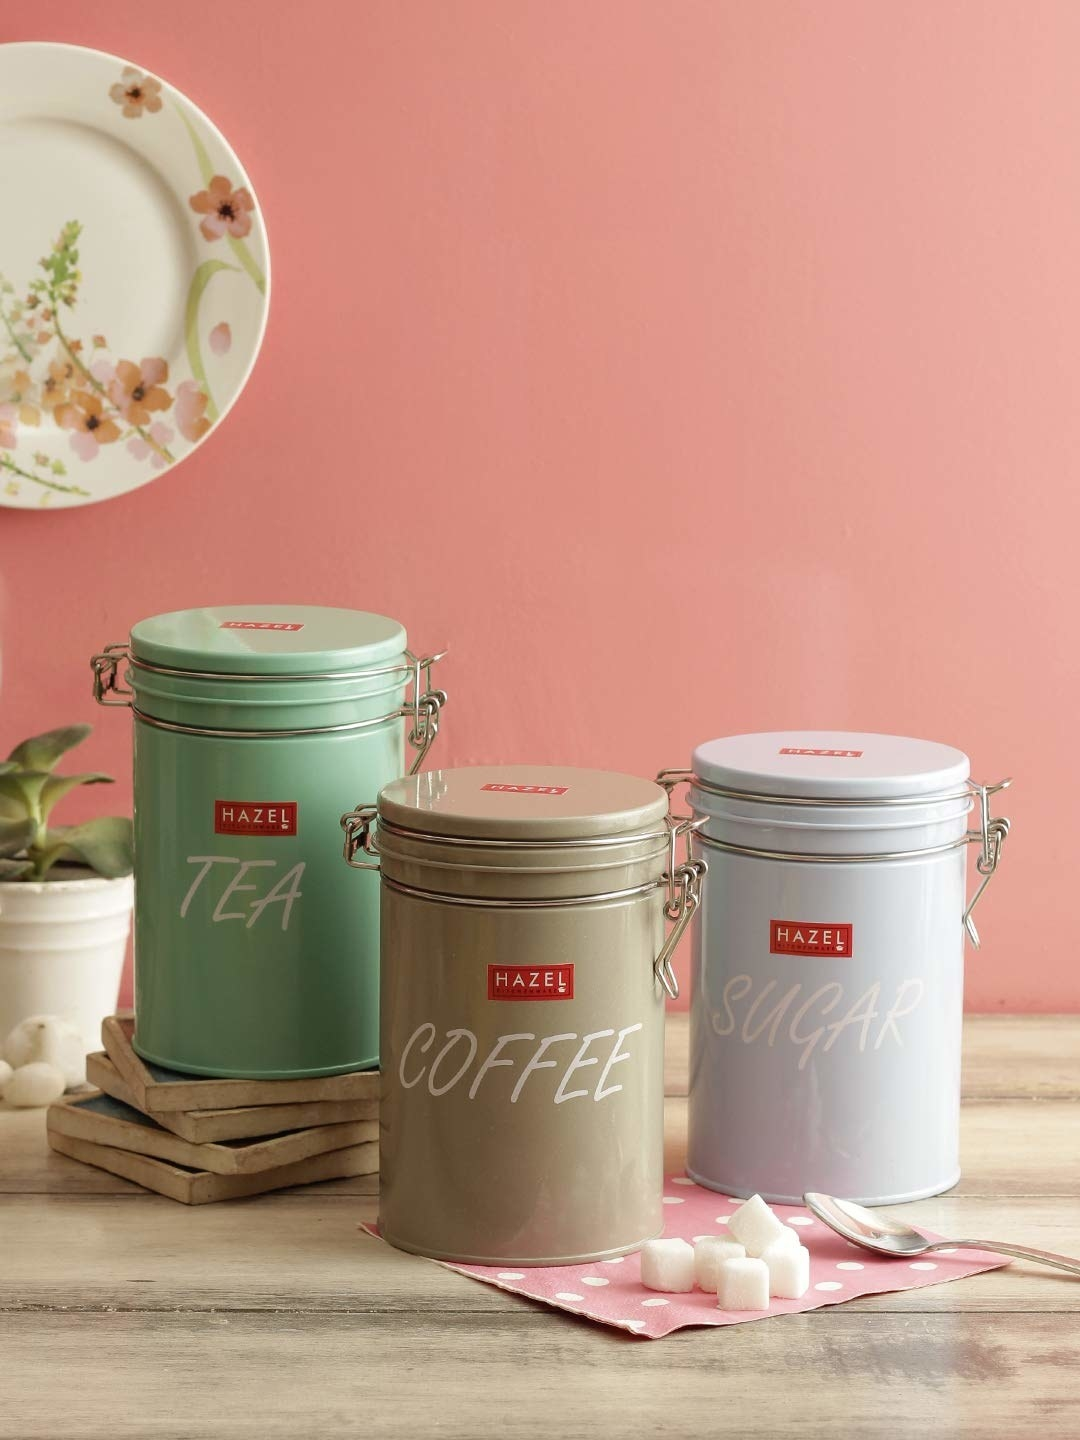 Tea, coffee and sugar canister next to a pink background